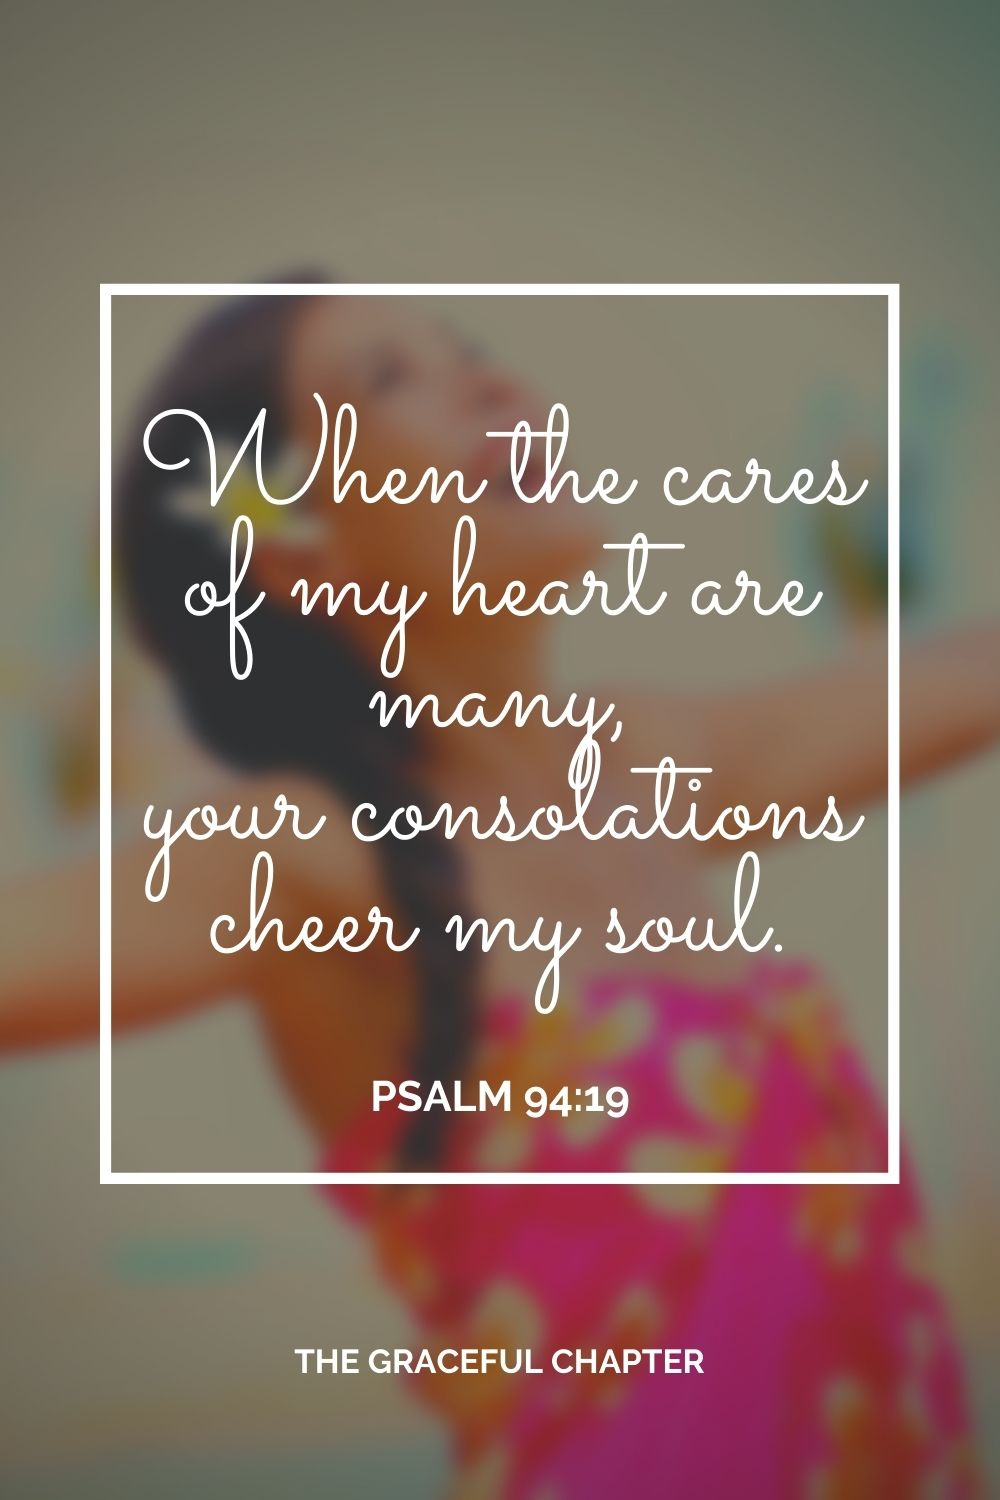 When the cares of my heart are many, your consolations cheer my soul. Psalm 94:19